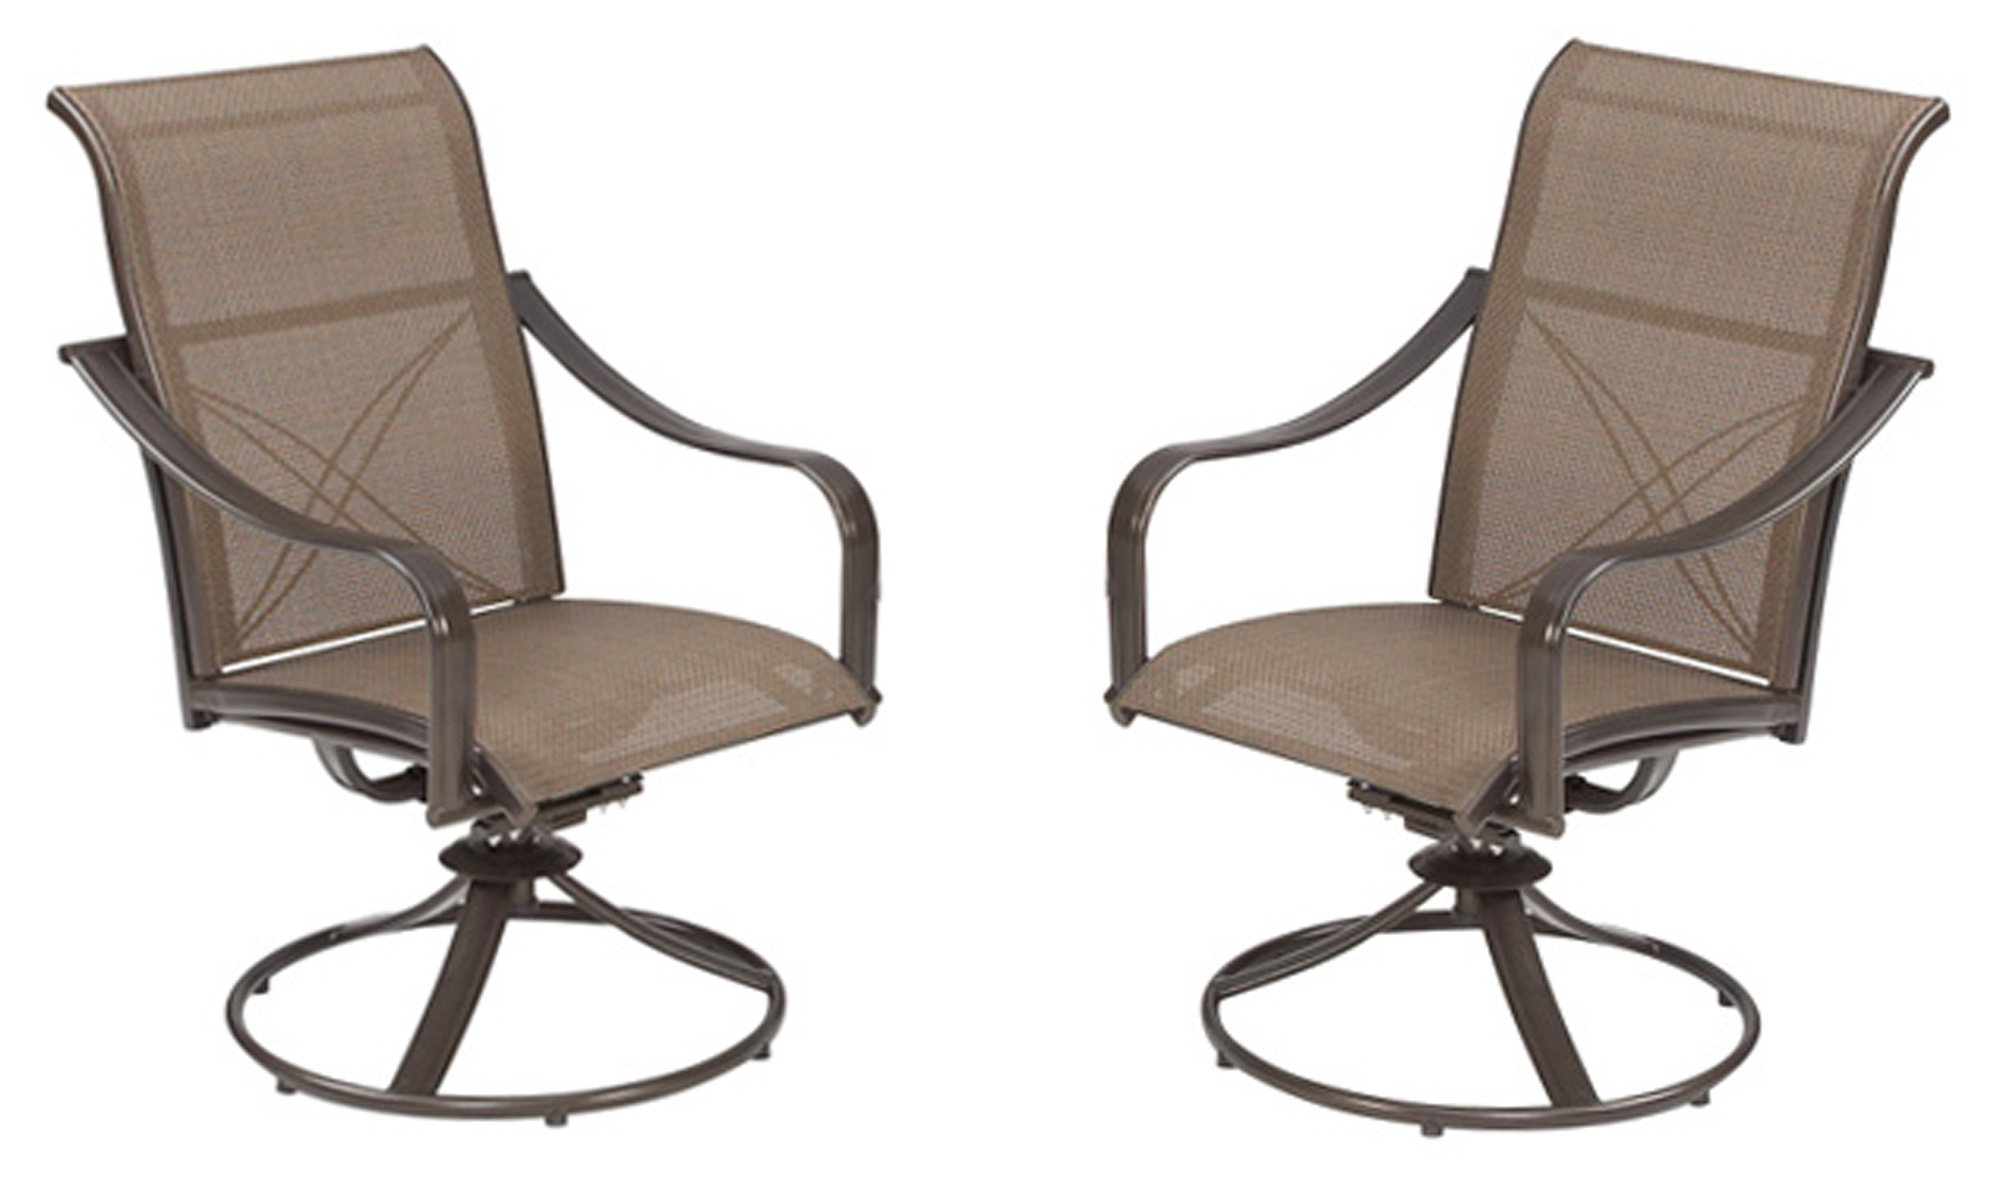 Patio Chairs Sold At Home Depot Recalled Because Porch Life Shouldn